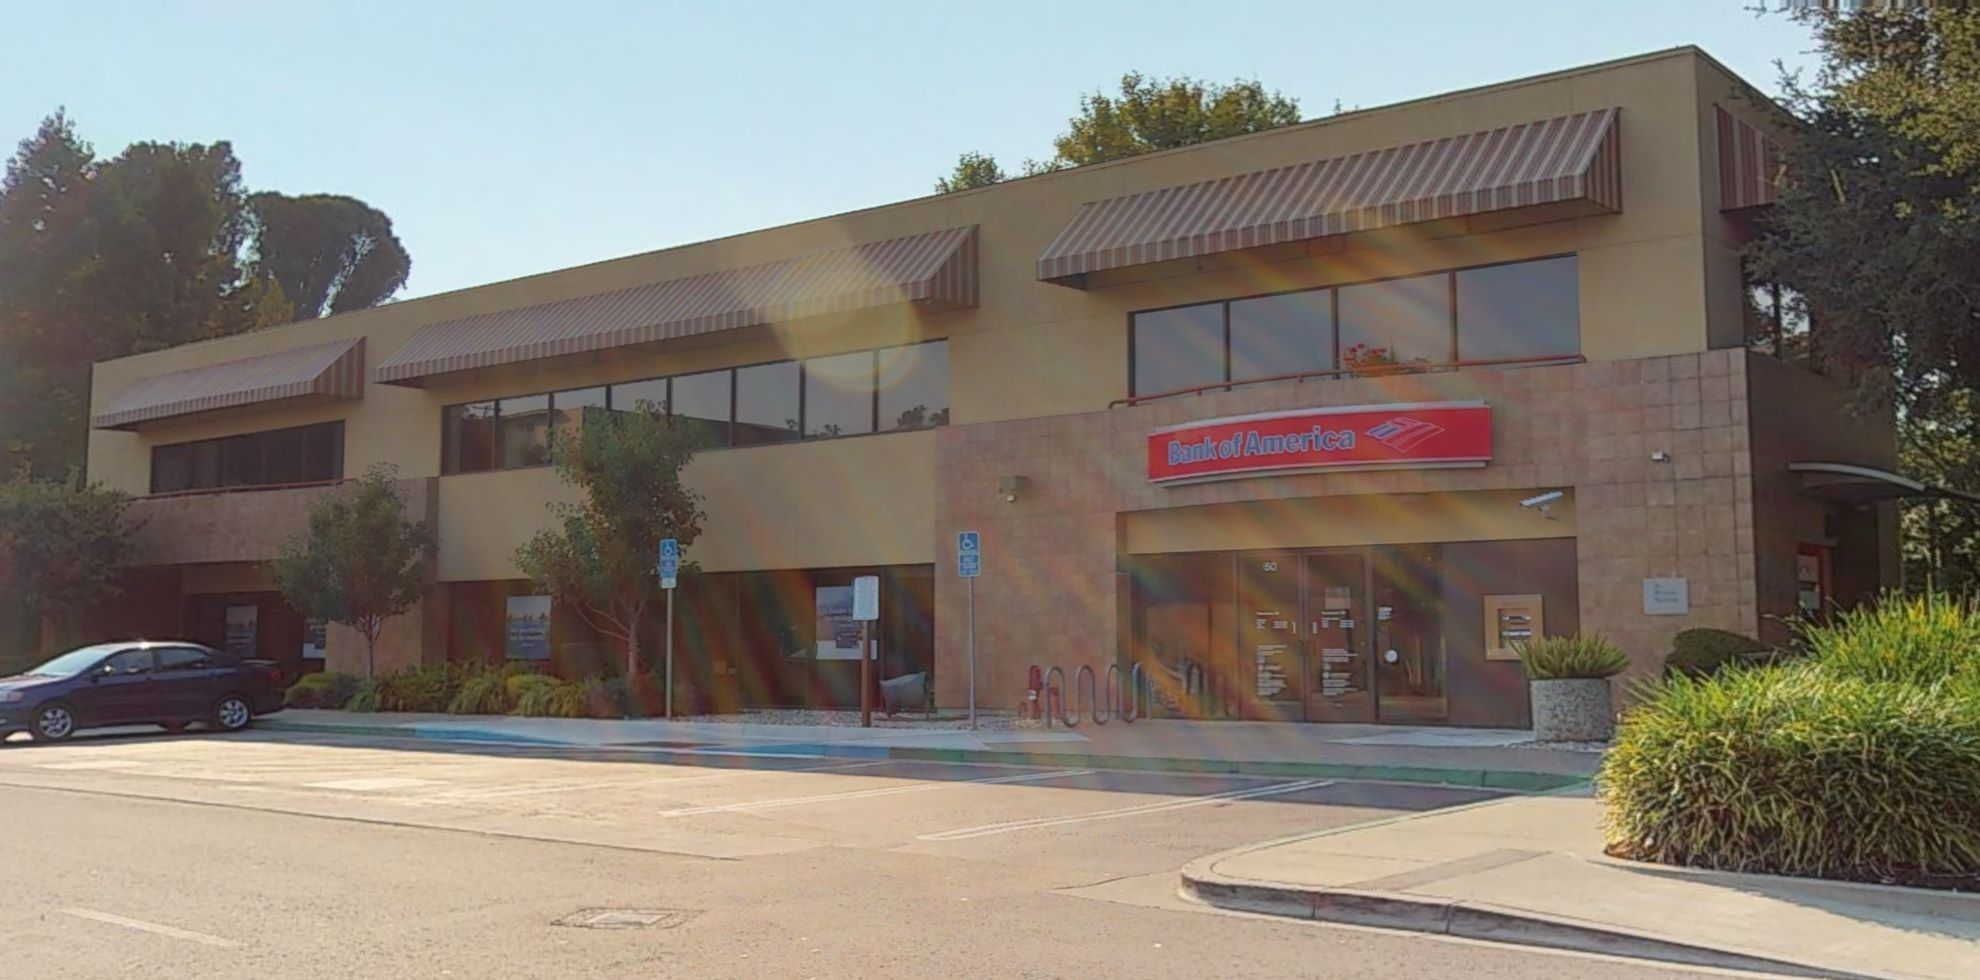 Bank of America financial center with walk-up ATM | 50 Bon Air Ctr STE 100, Greenbrae, CA 94904